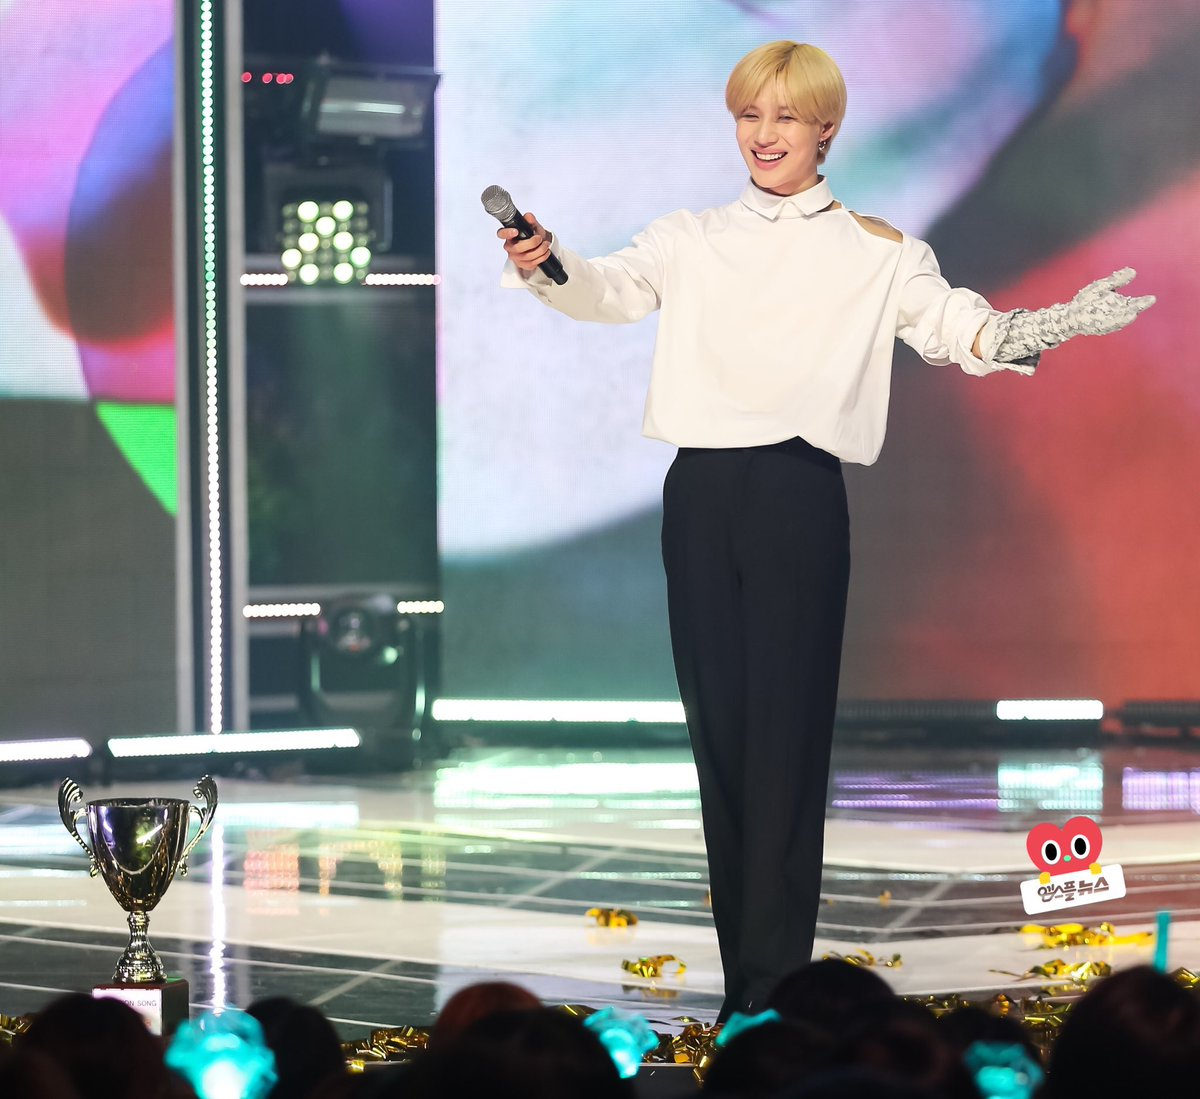 lee taemin blessing your tl <br>http://pic.twitter.com/lYM6o45seM